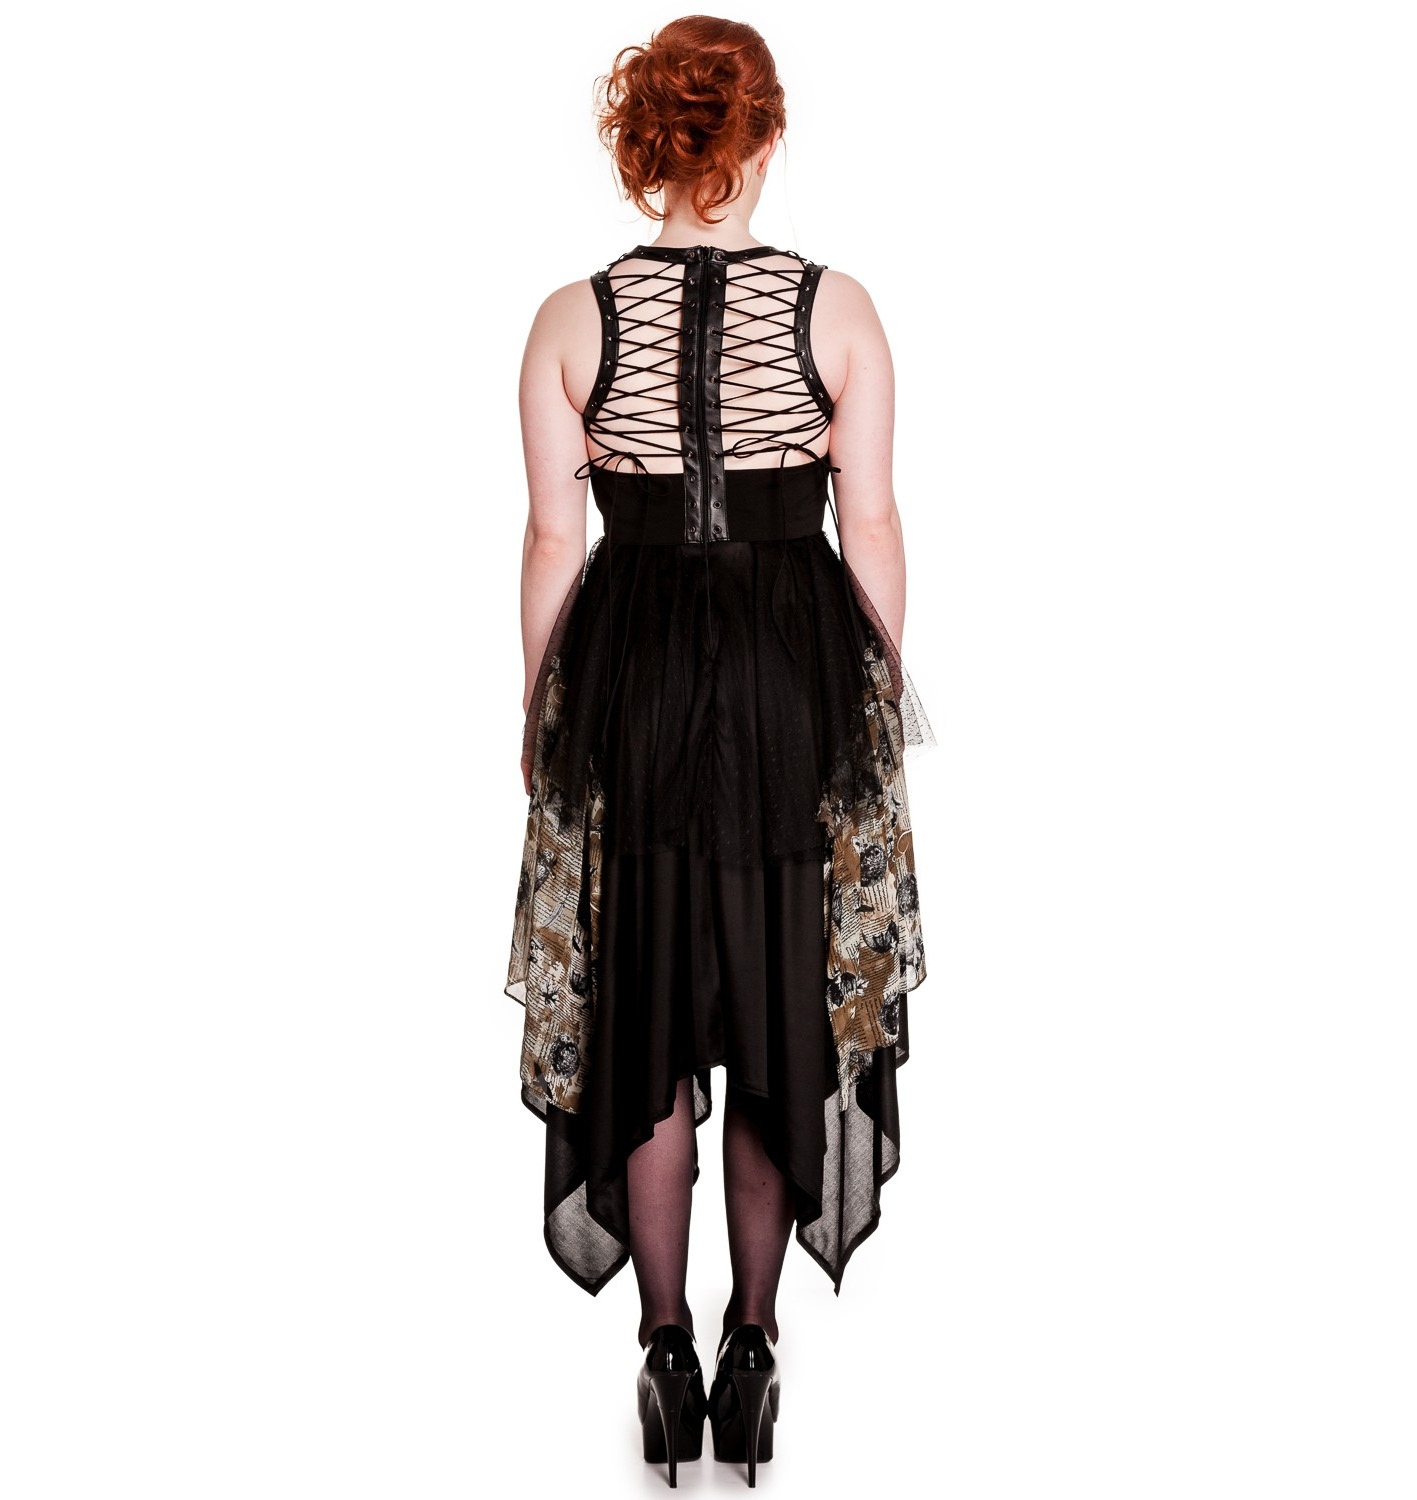 Hell-Bunny-Spin-Doctor-Goth-Black-Dress-ECLIPSE-Grunge-Steampunk-All-Sizes thumbnail 5